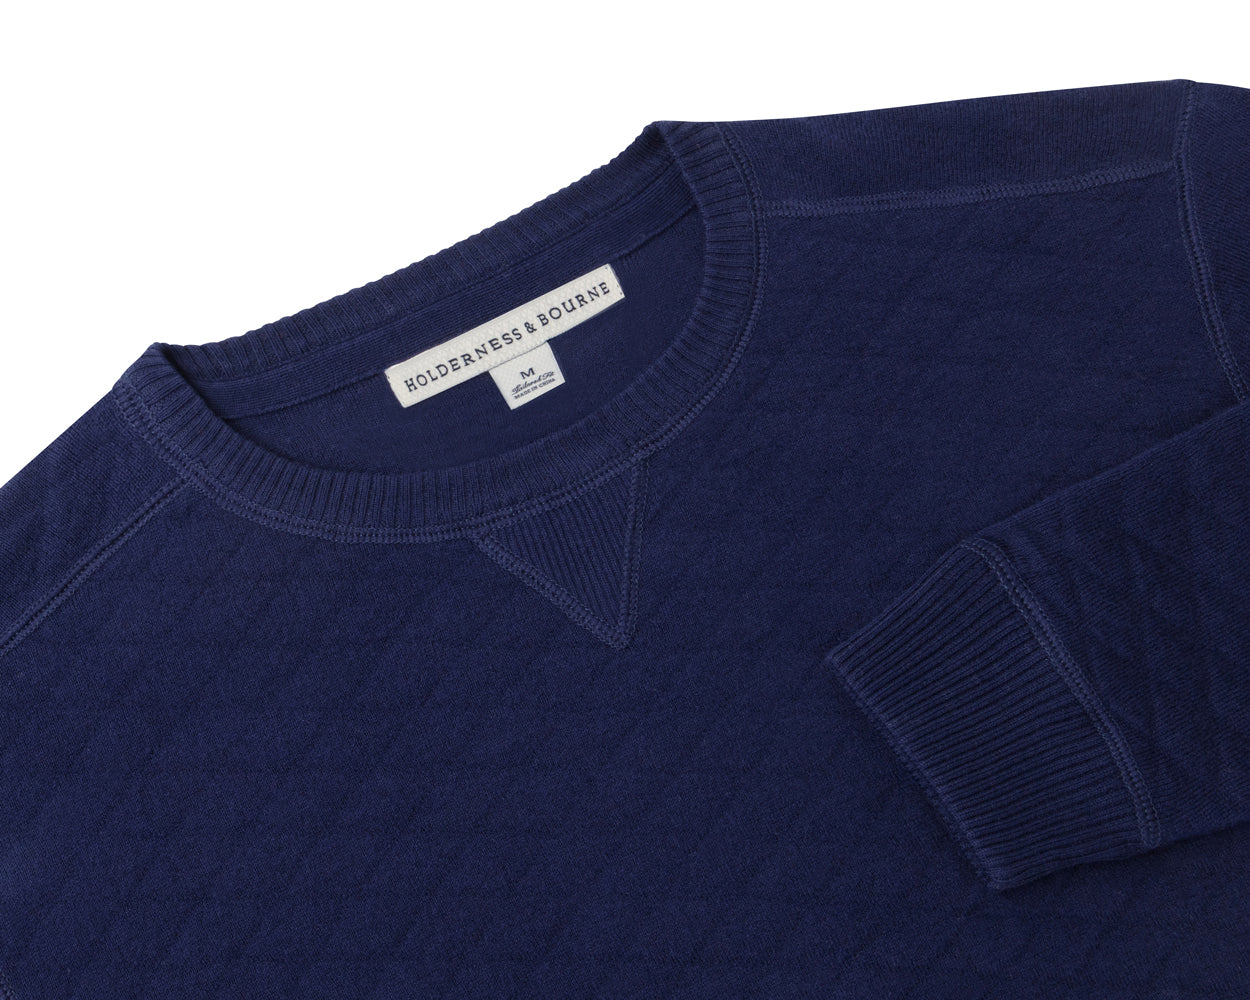 Holderness & Bourne - Sweater